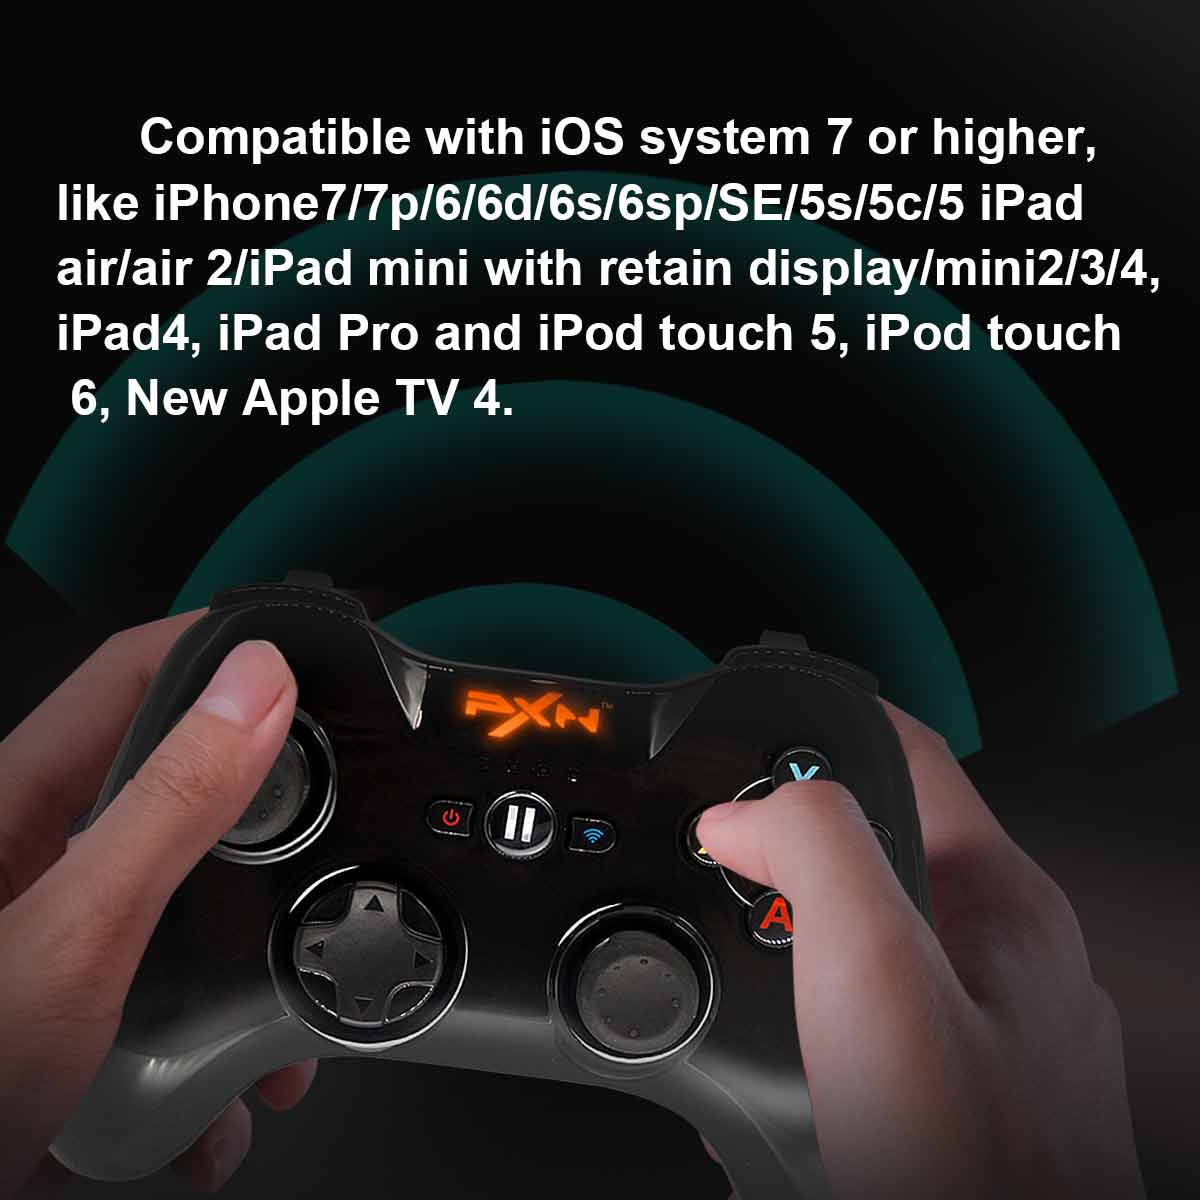 gContollers-6603-MFI-Game-Controller-iOS-System-Compatible-